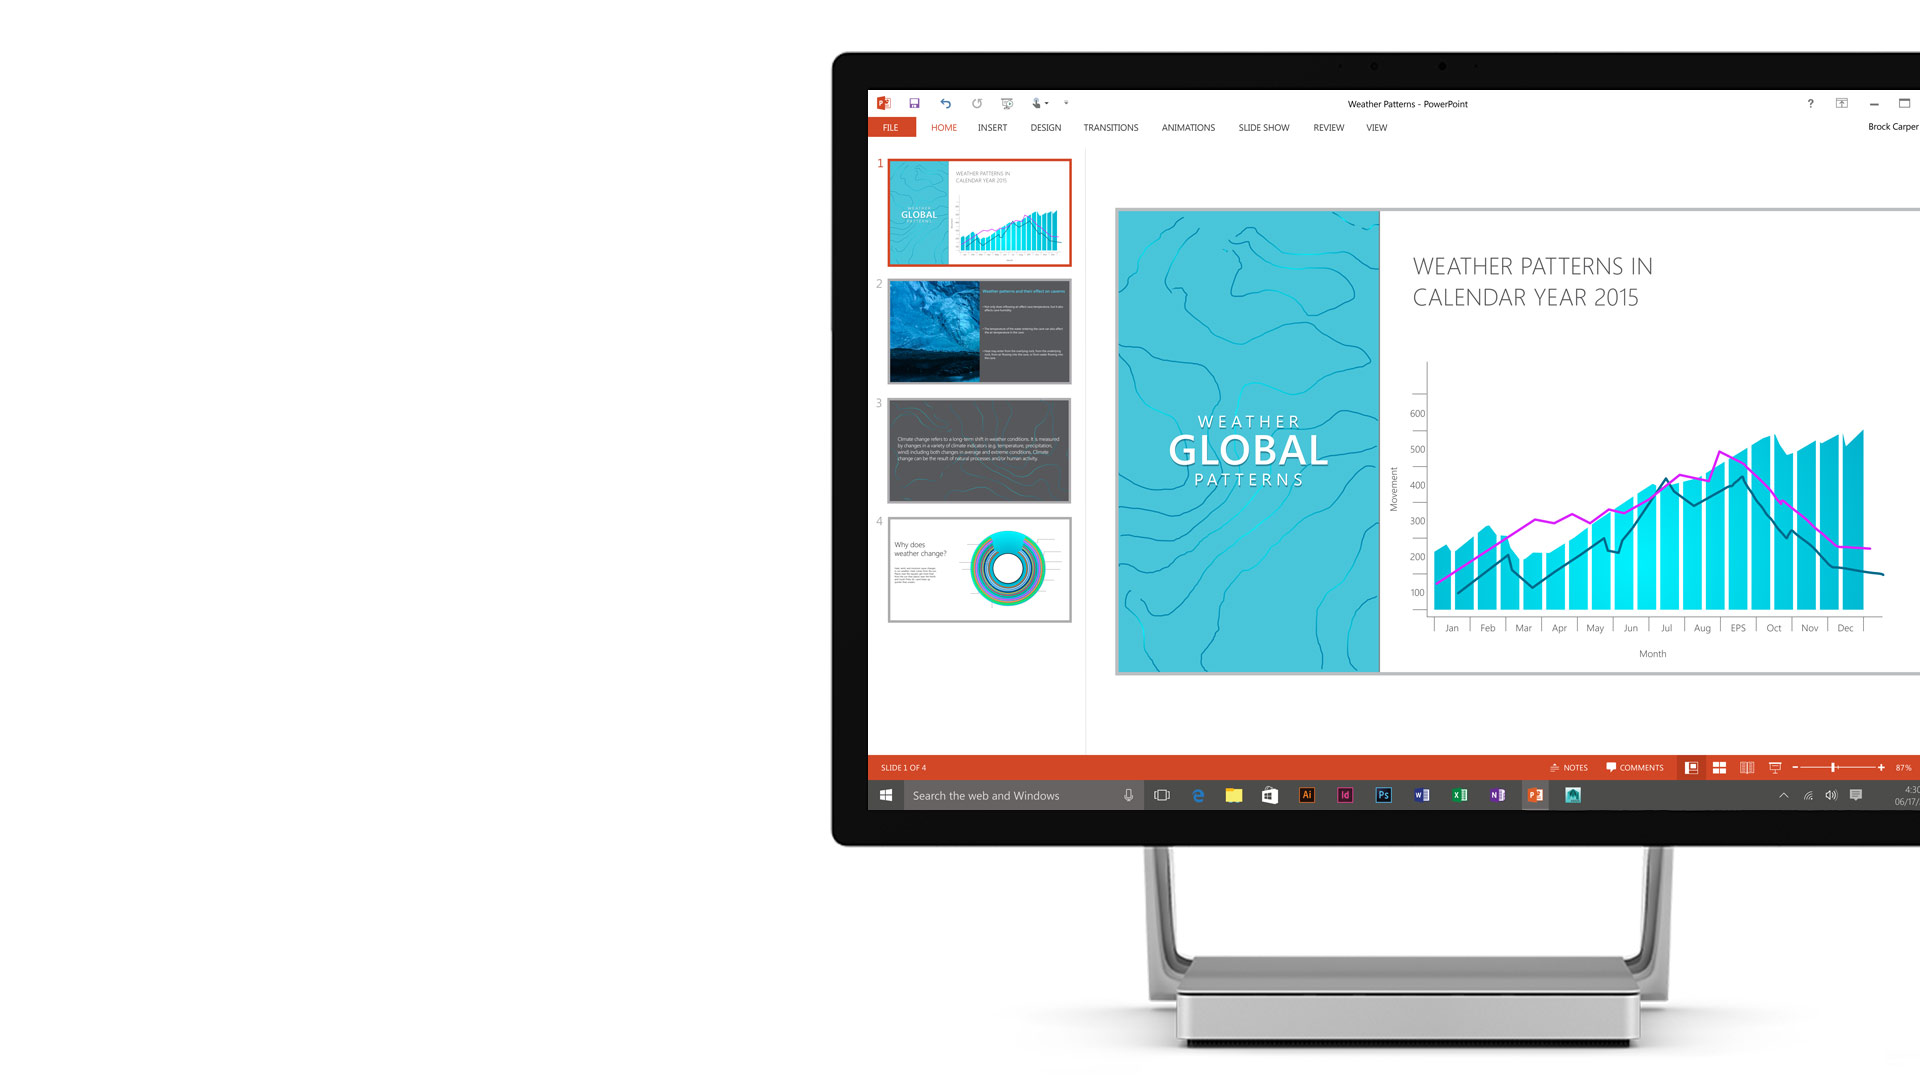 Microsoft PowerPoint open on the Surface Studio display